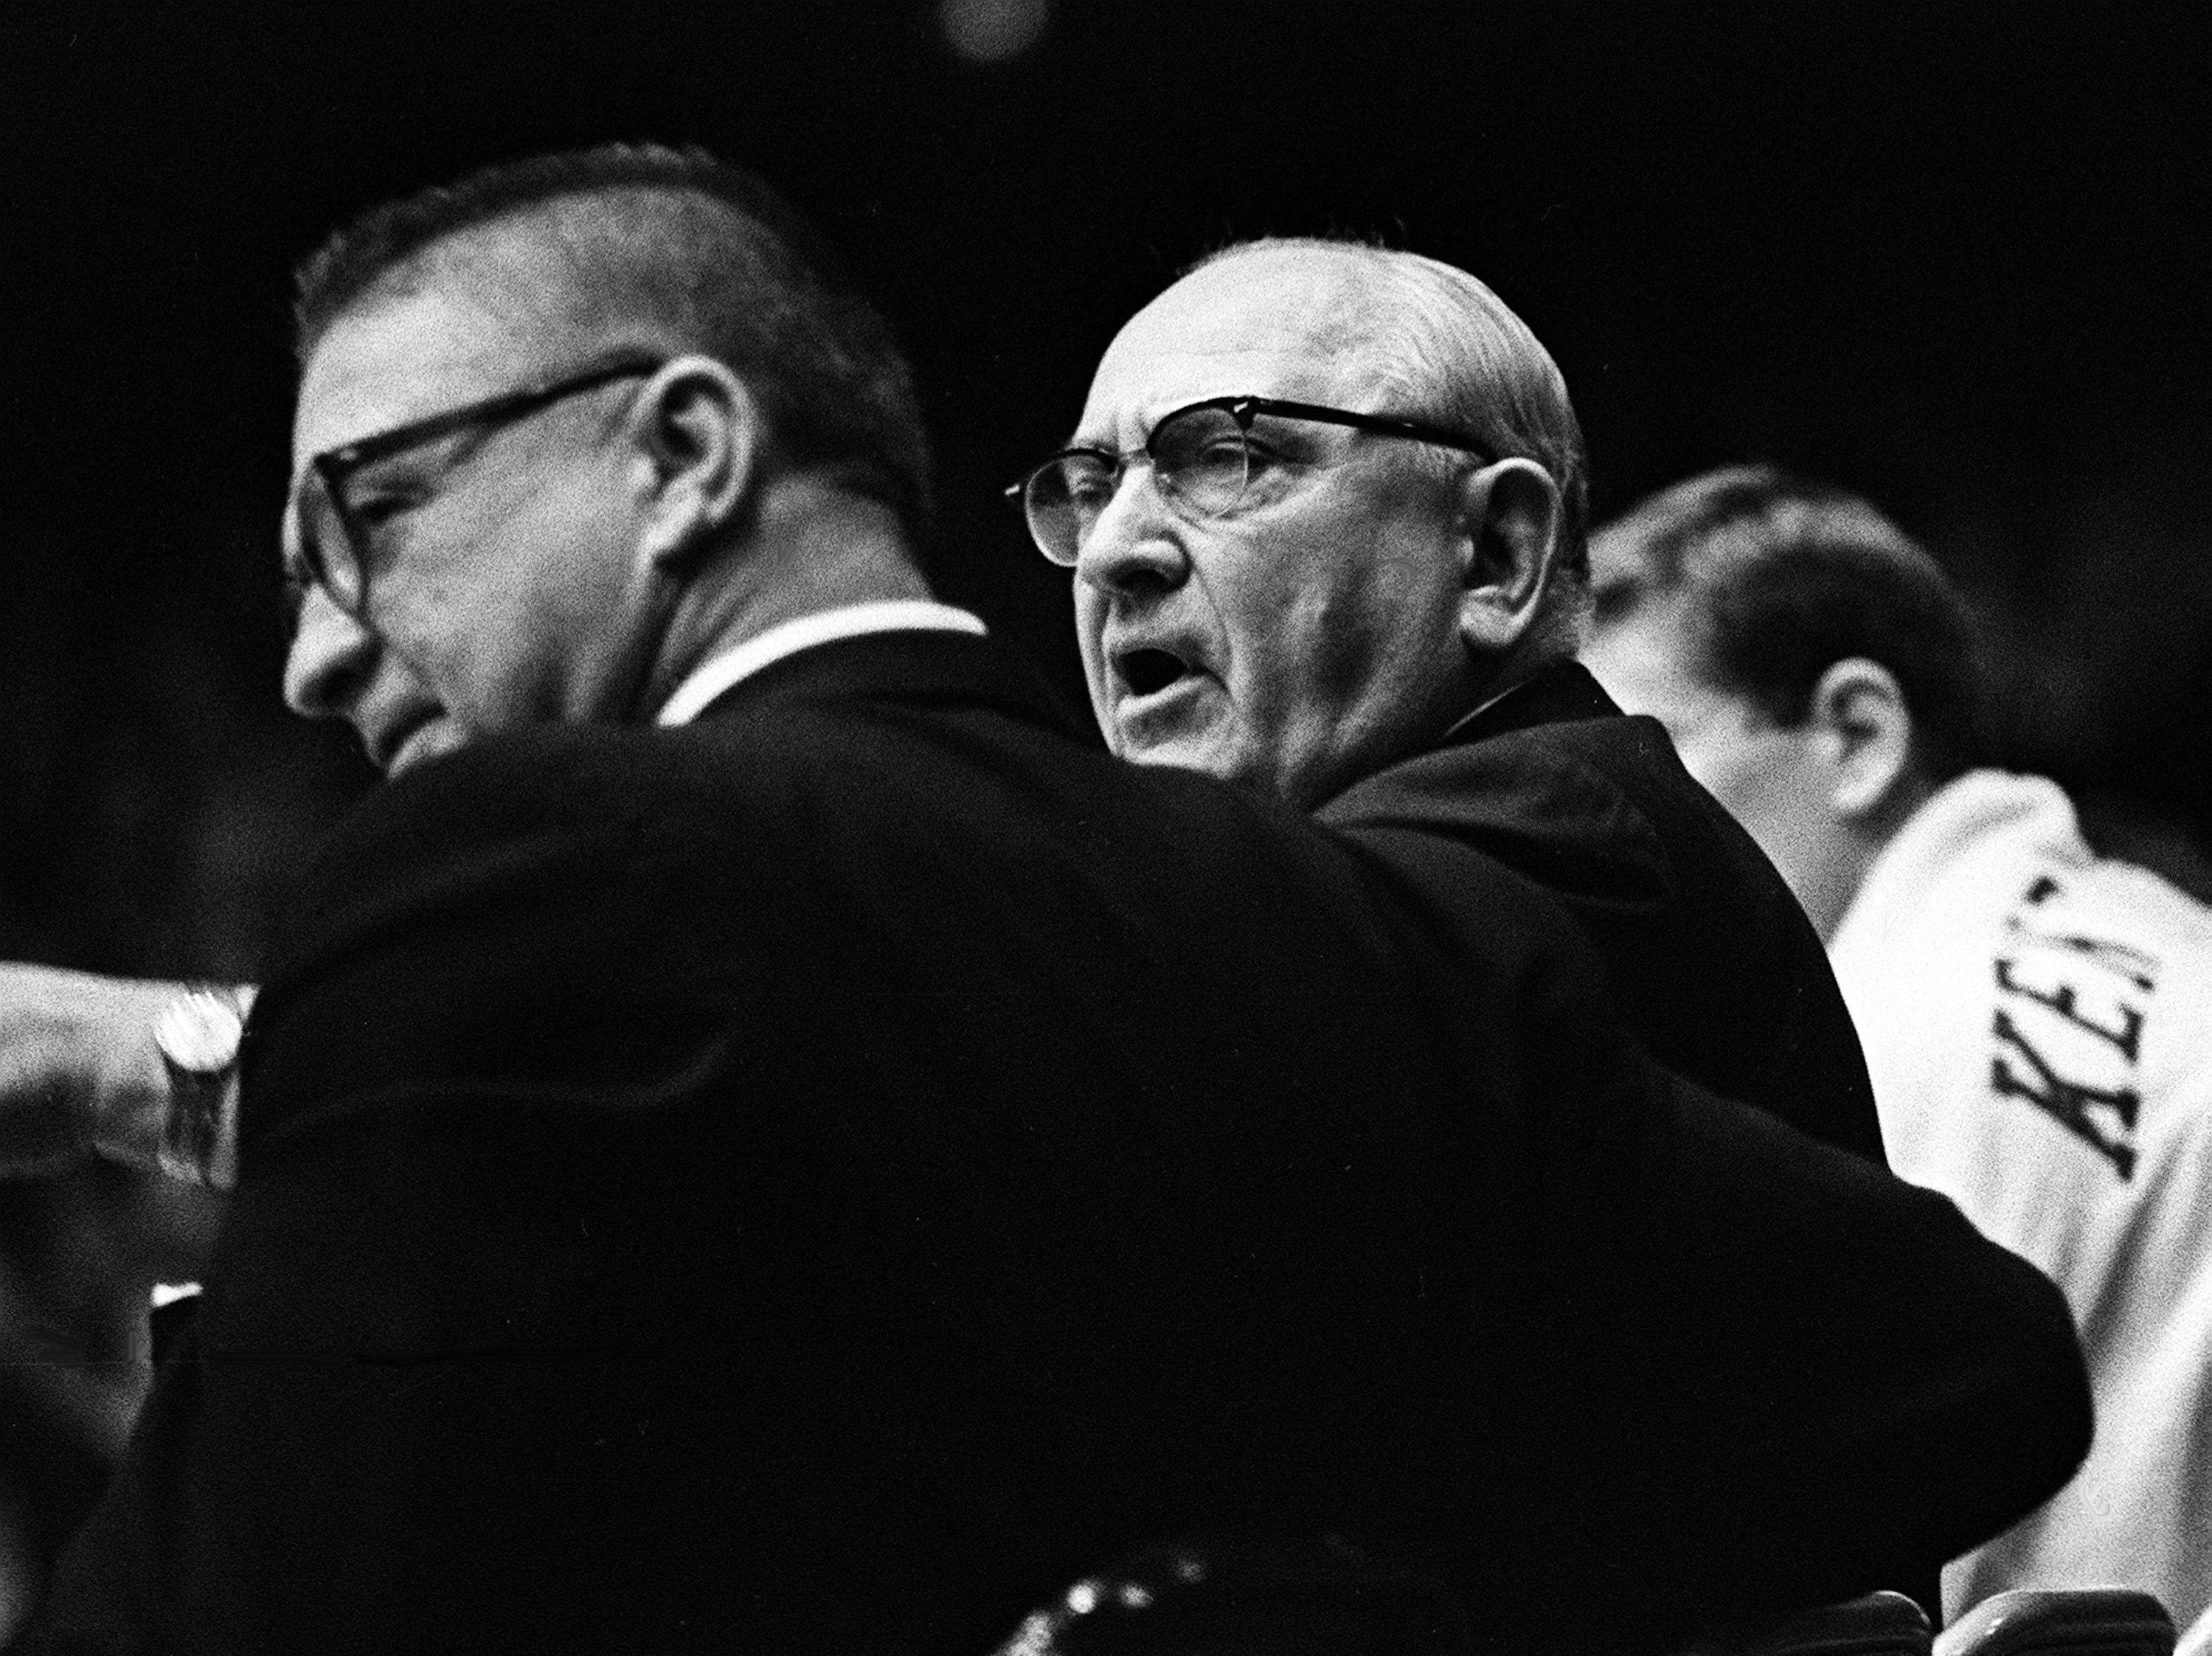 Kentucky head coach Adolph Rupp, right, talks with his assistant coach Harry Lancaster at the start of their game at Vanderbilt. The undefeated Wildcats won 105-90 over the Commodores before more than 9,500 fans in Memorial Gym Feb. 2, 1966.